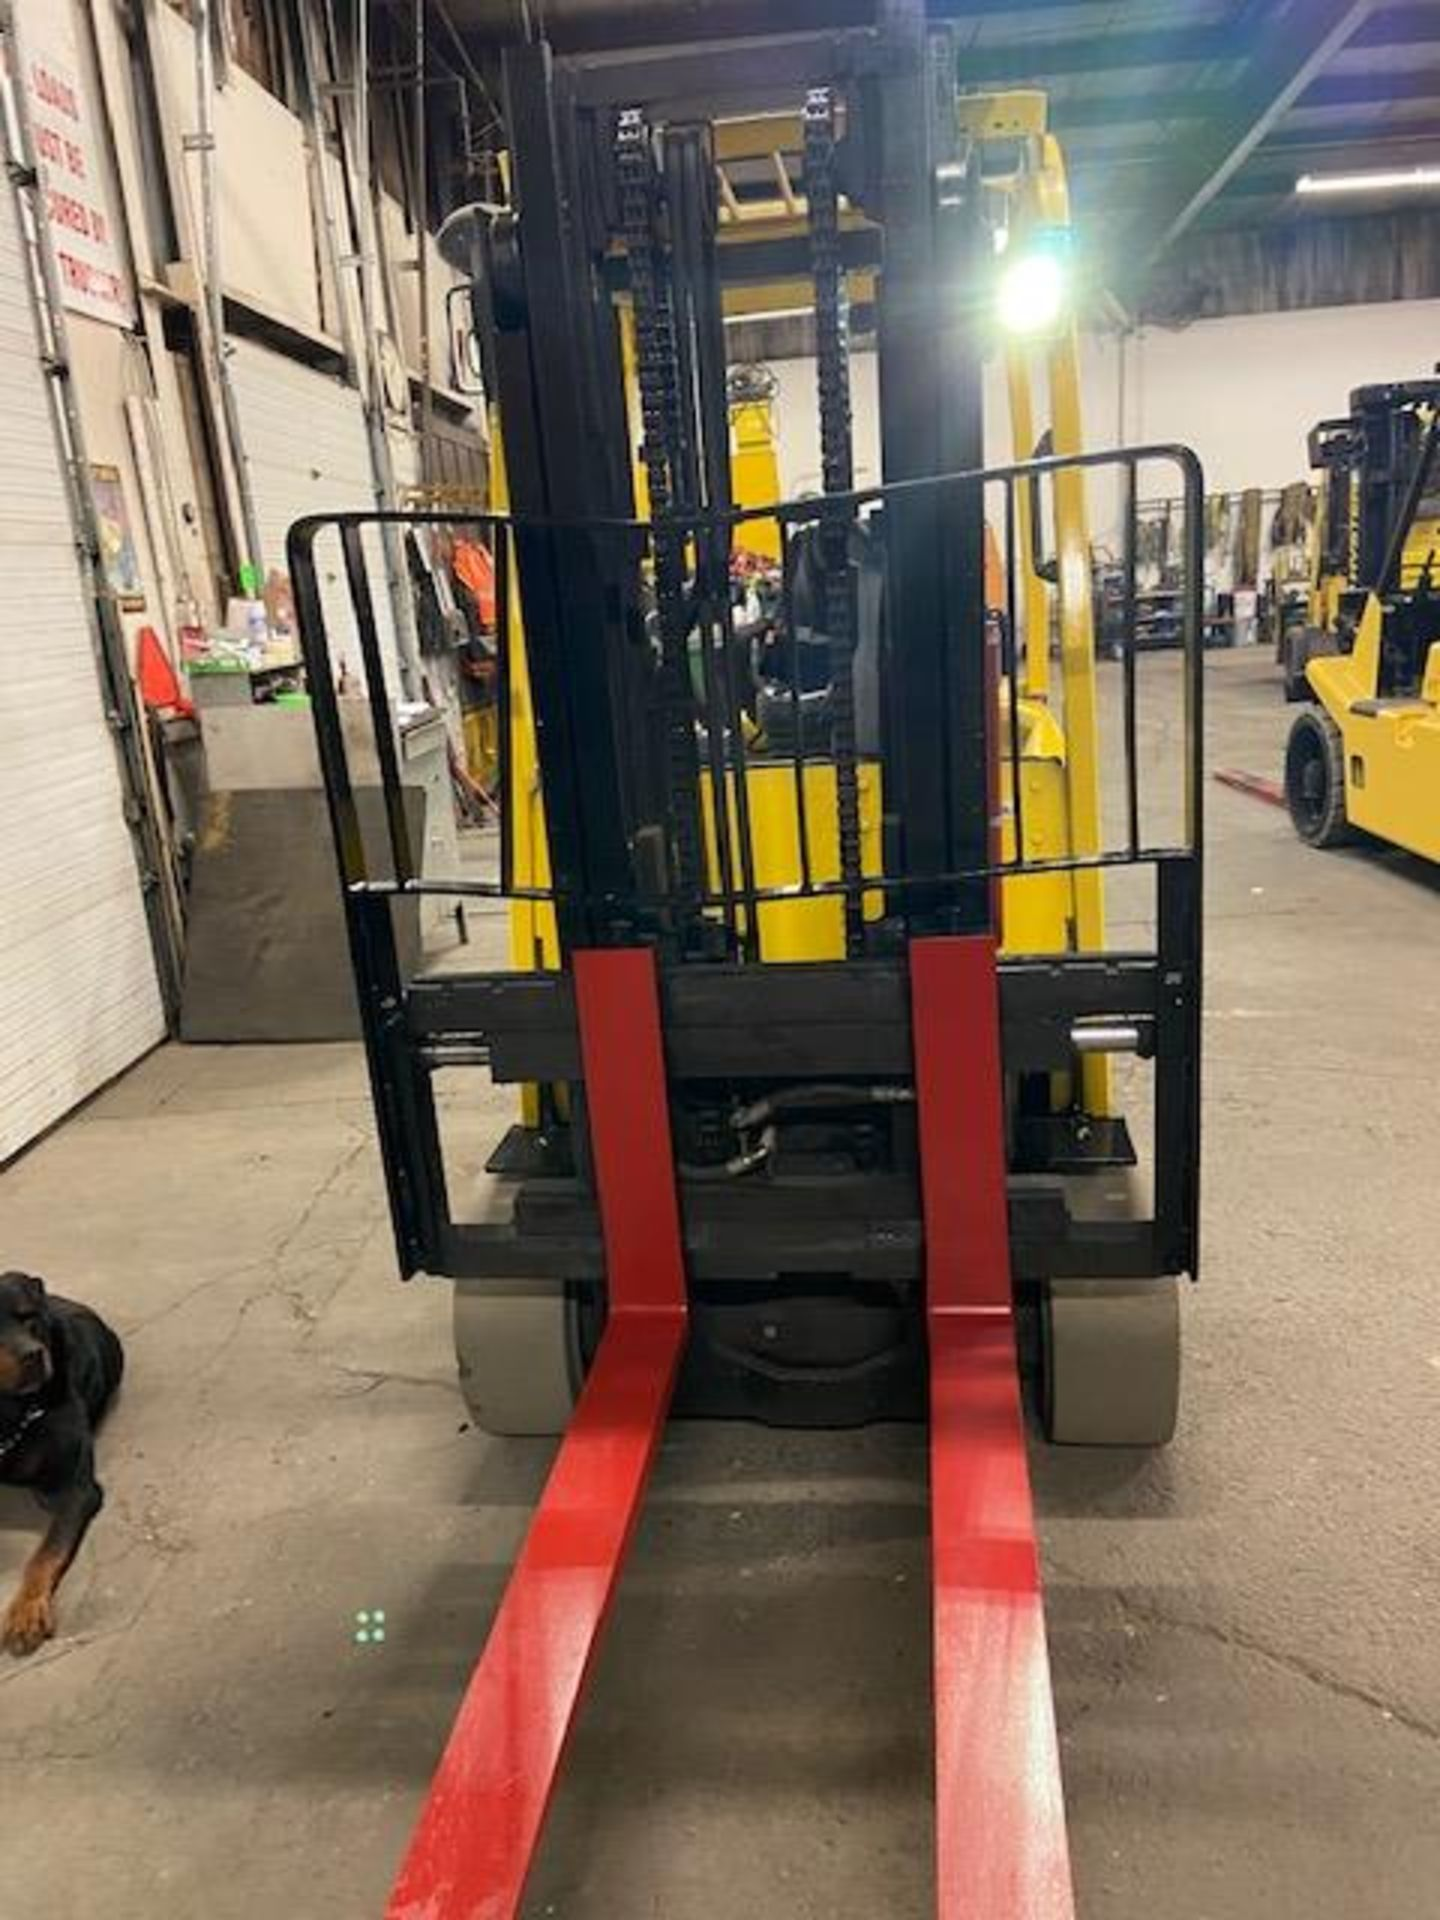 FREE CUSTOMS - 2014 Hyster 8000lbs Capacity Forklift Electric with sideshift and 3 stage mast - Image 2 of 2